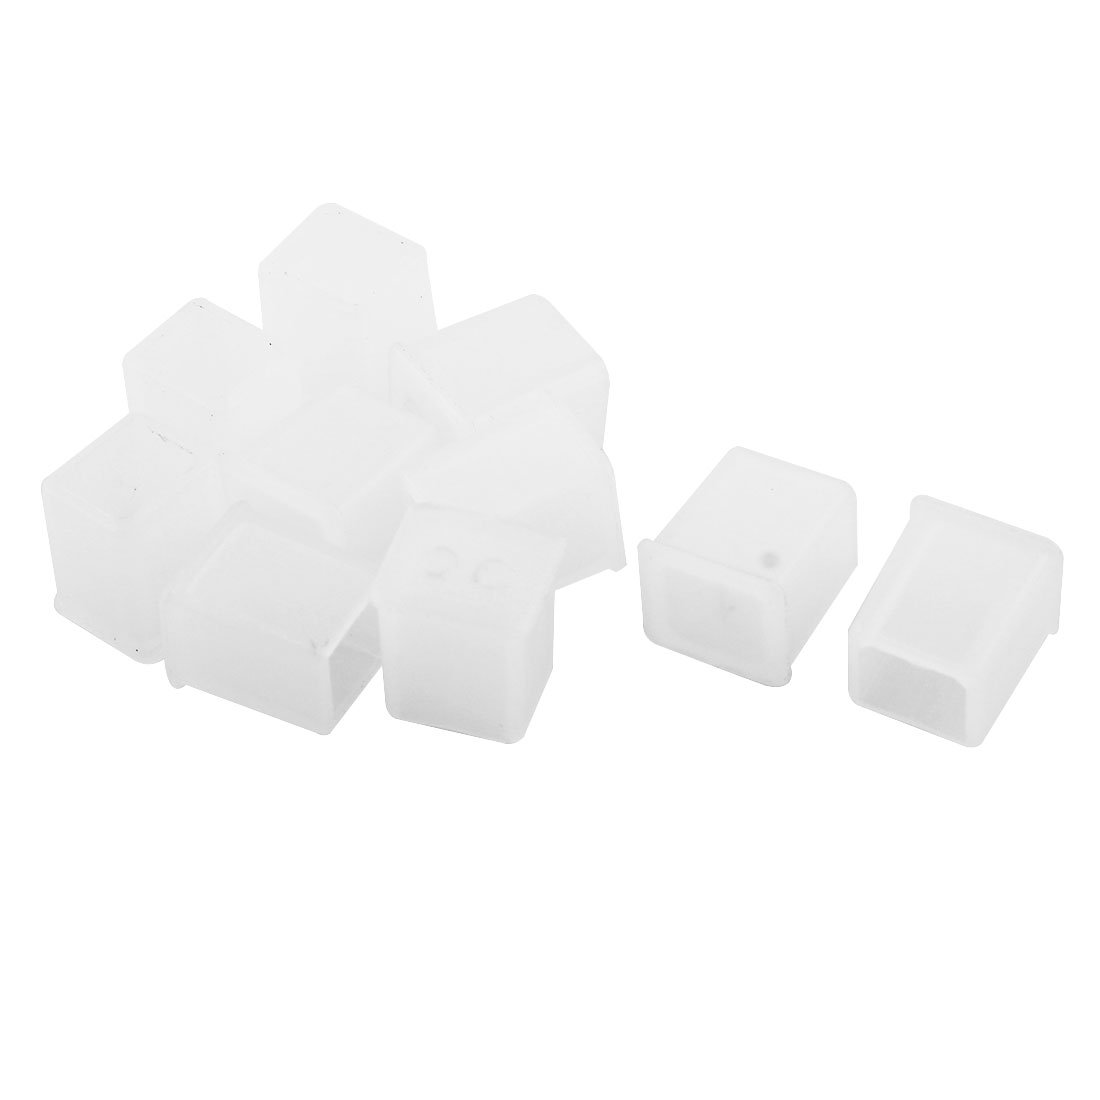 Uxcell a15031300ux0011 10 Pcs Clear Plastic Anti Dust Cover Cap for USB-B Male Port Printer (Pack of 10)